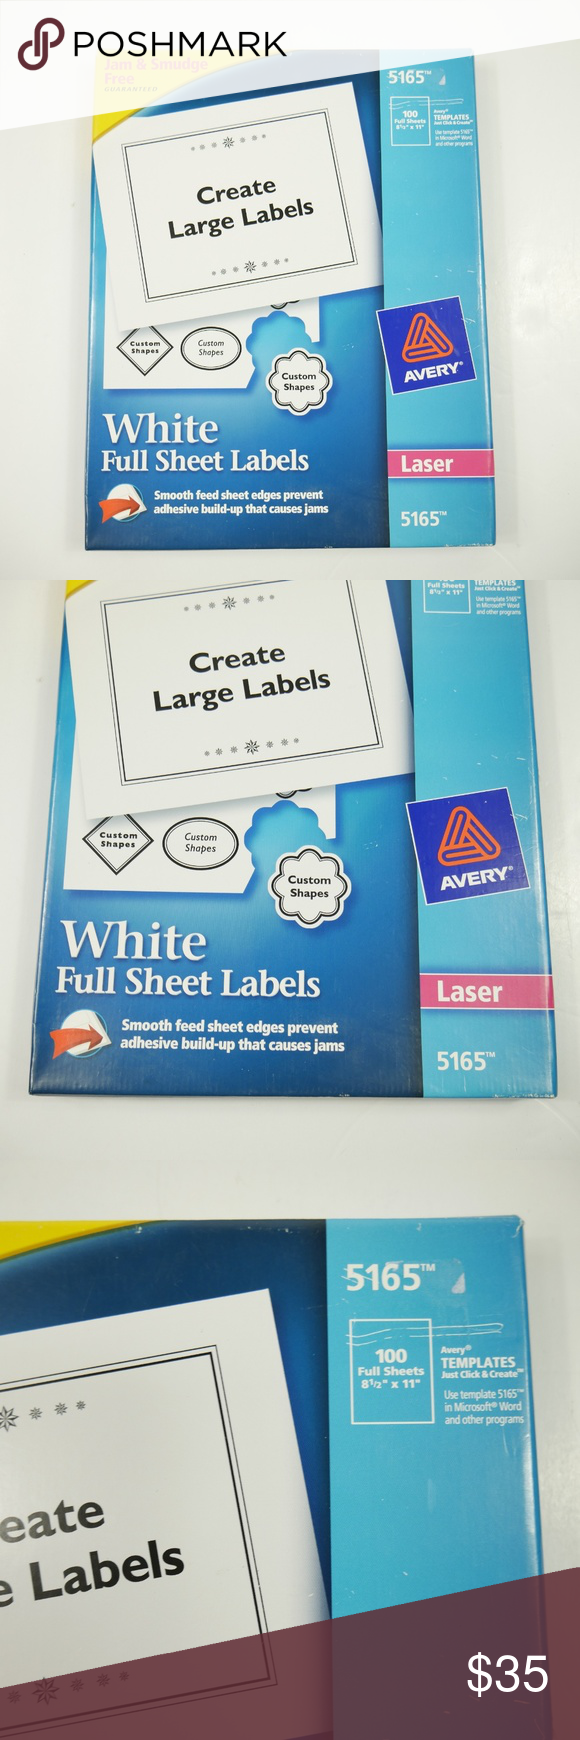 Avery 5165 White Full Sheet Shipping Labels 100pc New Avery White Full Sheet Shipping Labels 5165 Laser 8 1 2 X 11 Office Labels Sheet Labels Shipping Labels